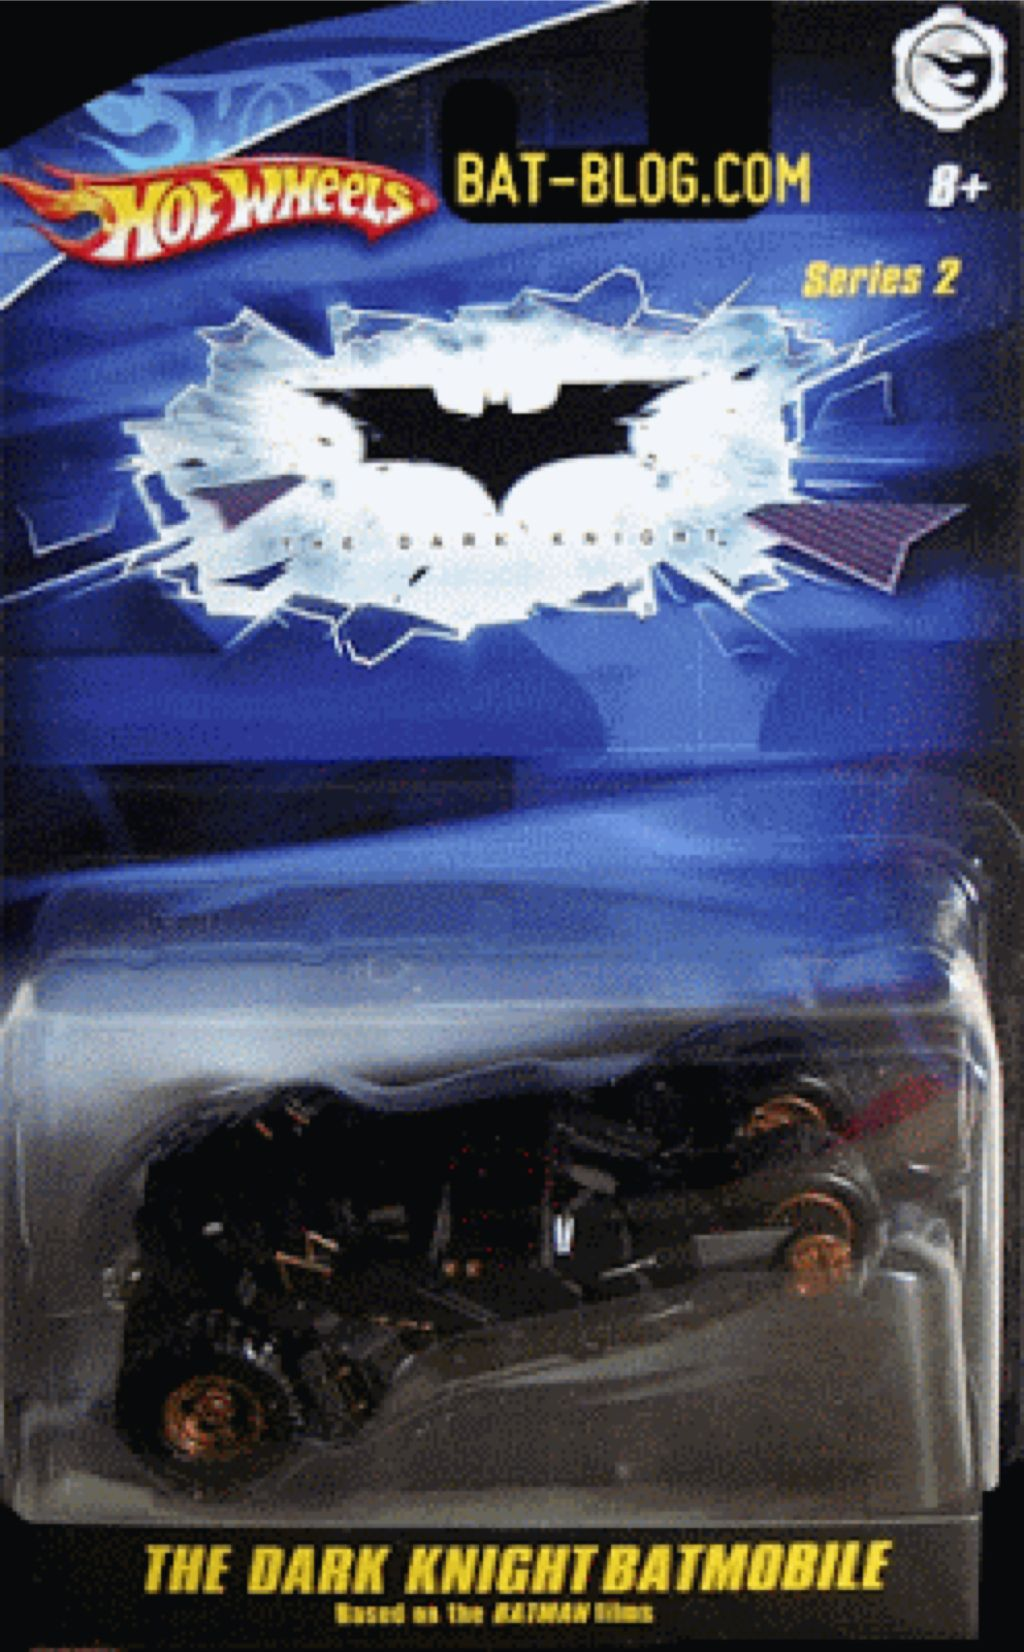 The Dark Knight Batmobile (Tumbler) Toy Car, Die Cast, And Hot Wheels - M7099-0980 (2008) back image (back cover, second image)